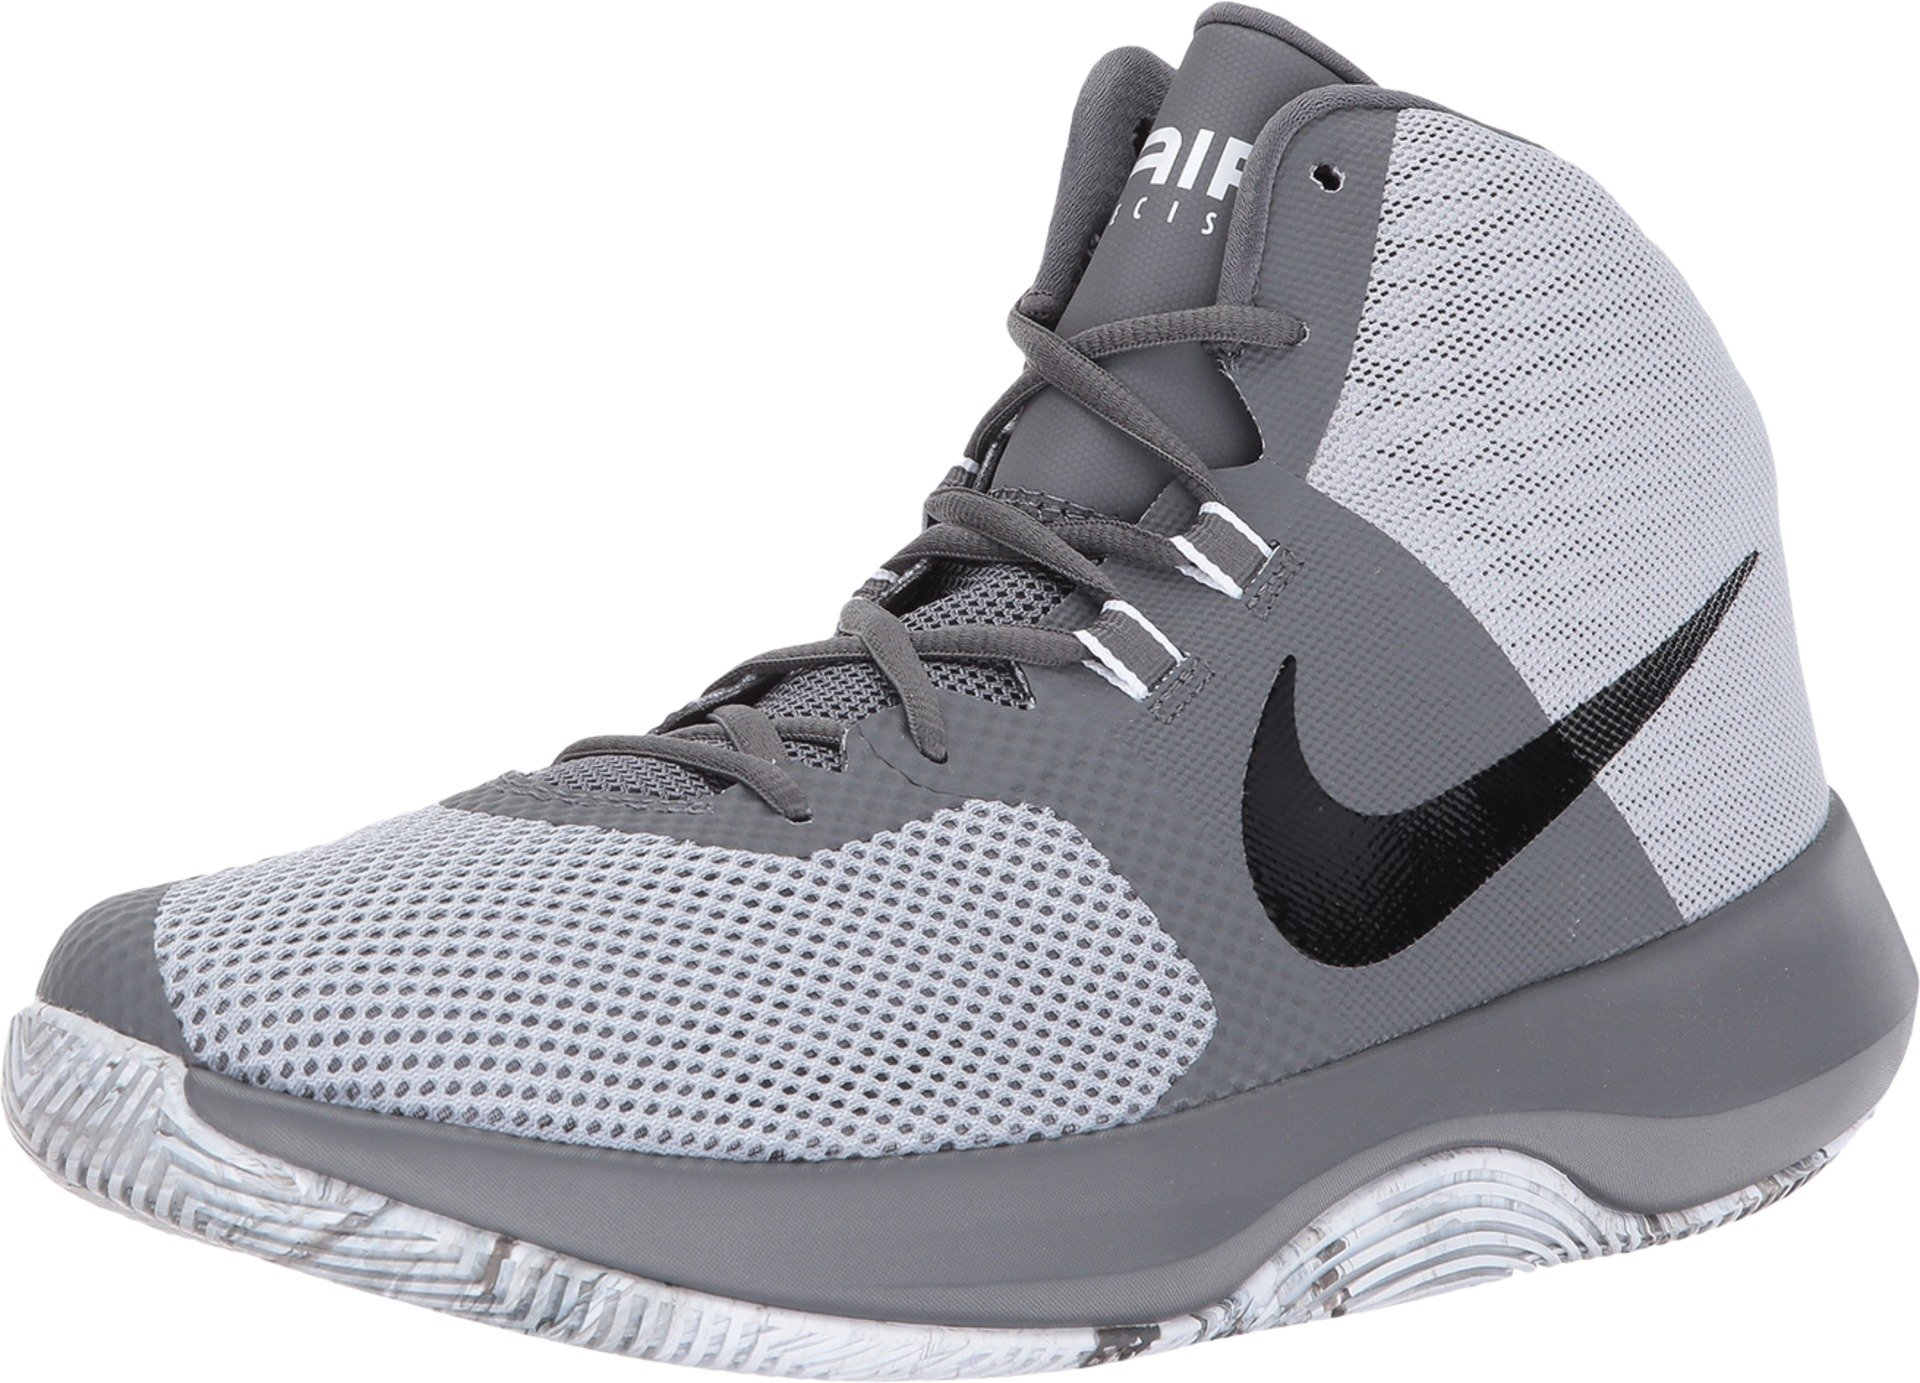 Nike Men's Air Precision Basketball Shoes (7.5, Wolf Grey/Black-M)